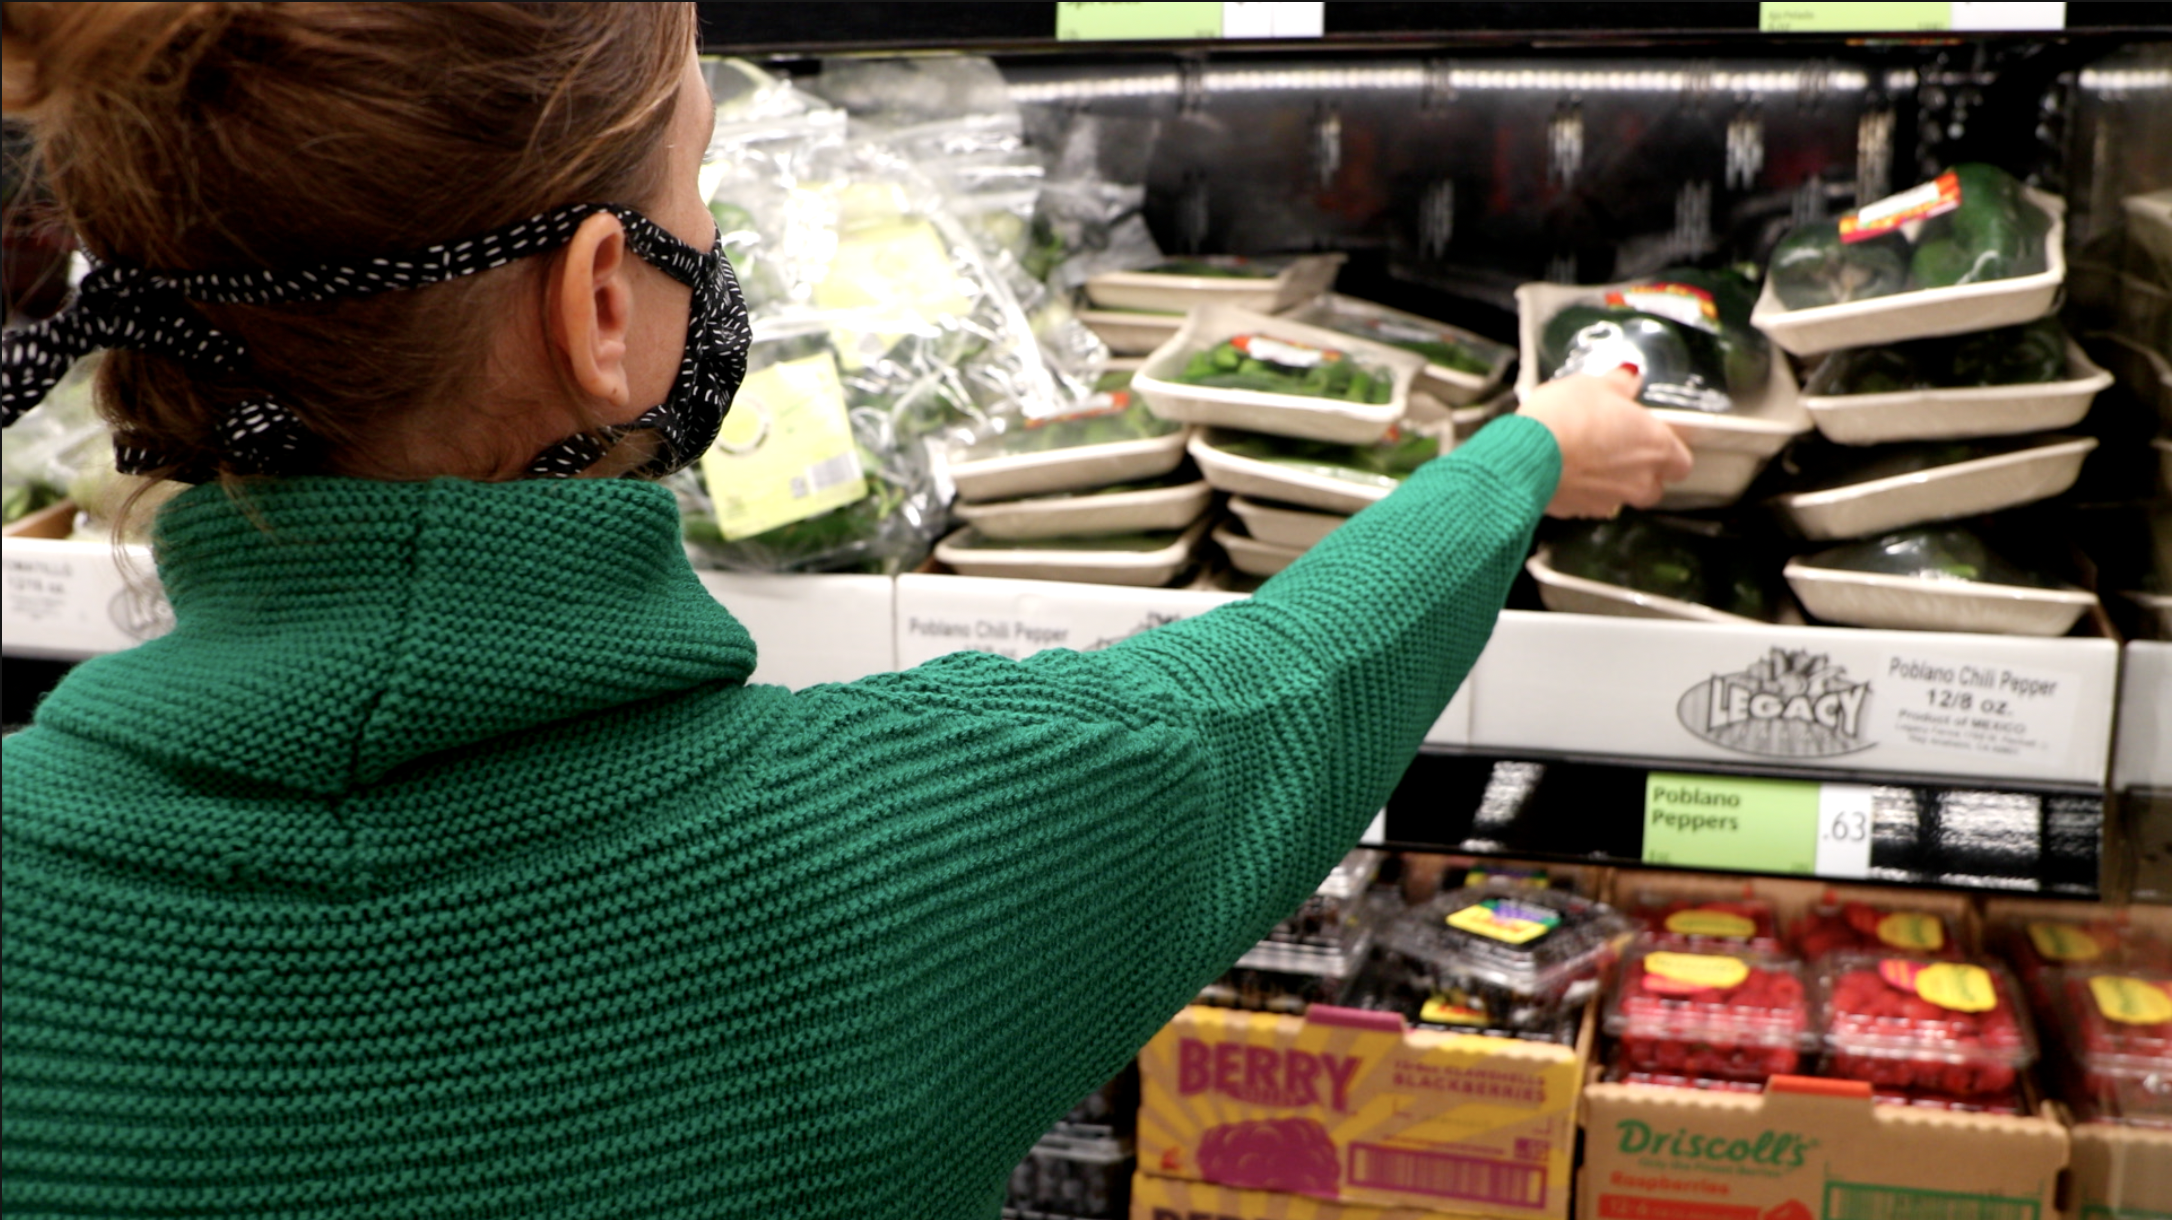 A woman in a green sweater reaching for a package of poblano peppers at a grocery store. With raspberries on a lower shelf.